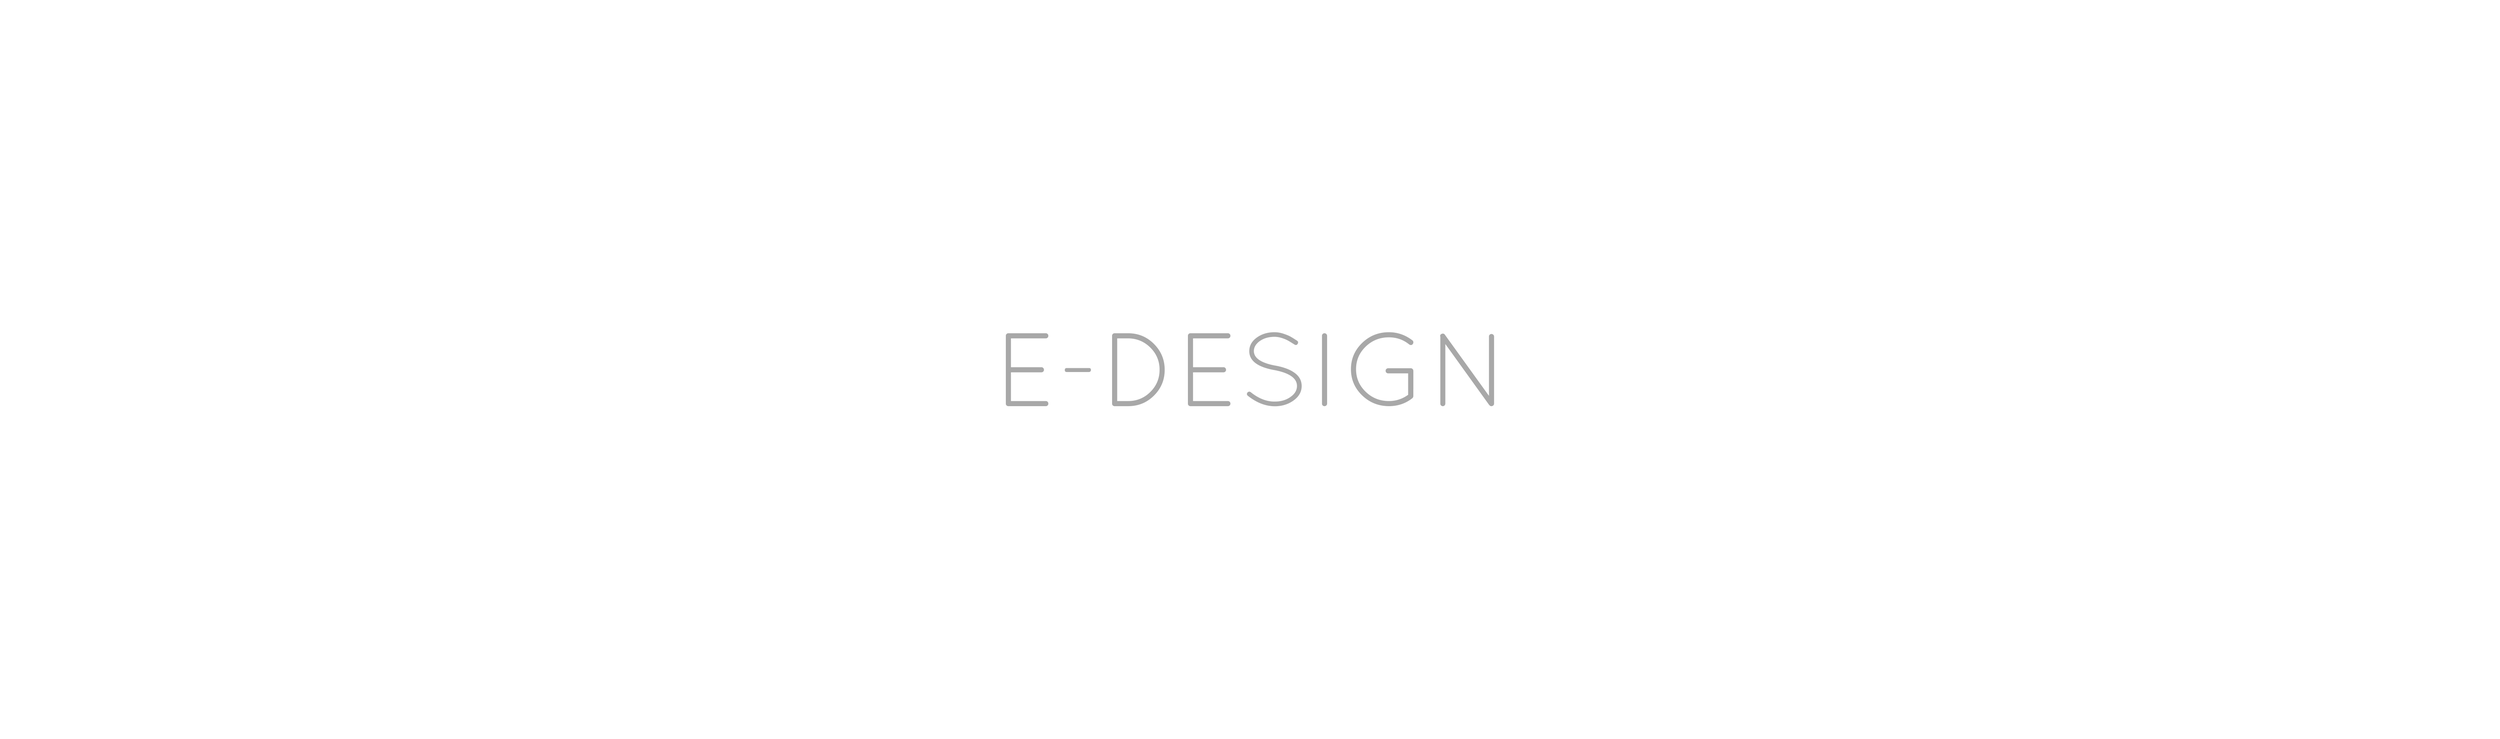 E-DESIGN is the perfect fit for those {near or far} that want our vision and designer know-how without retaining our full-service offerings. It is a great solution for those seeking a creative direction for their space but want to implement the design plan on their own time.  Fill out our   questionnaire   to get started!